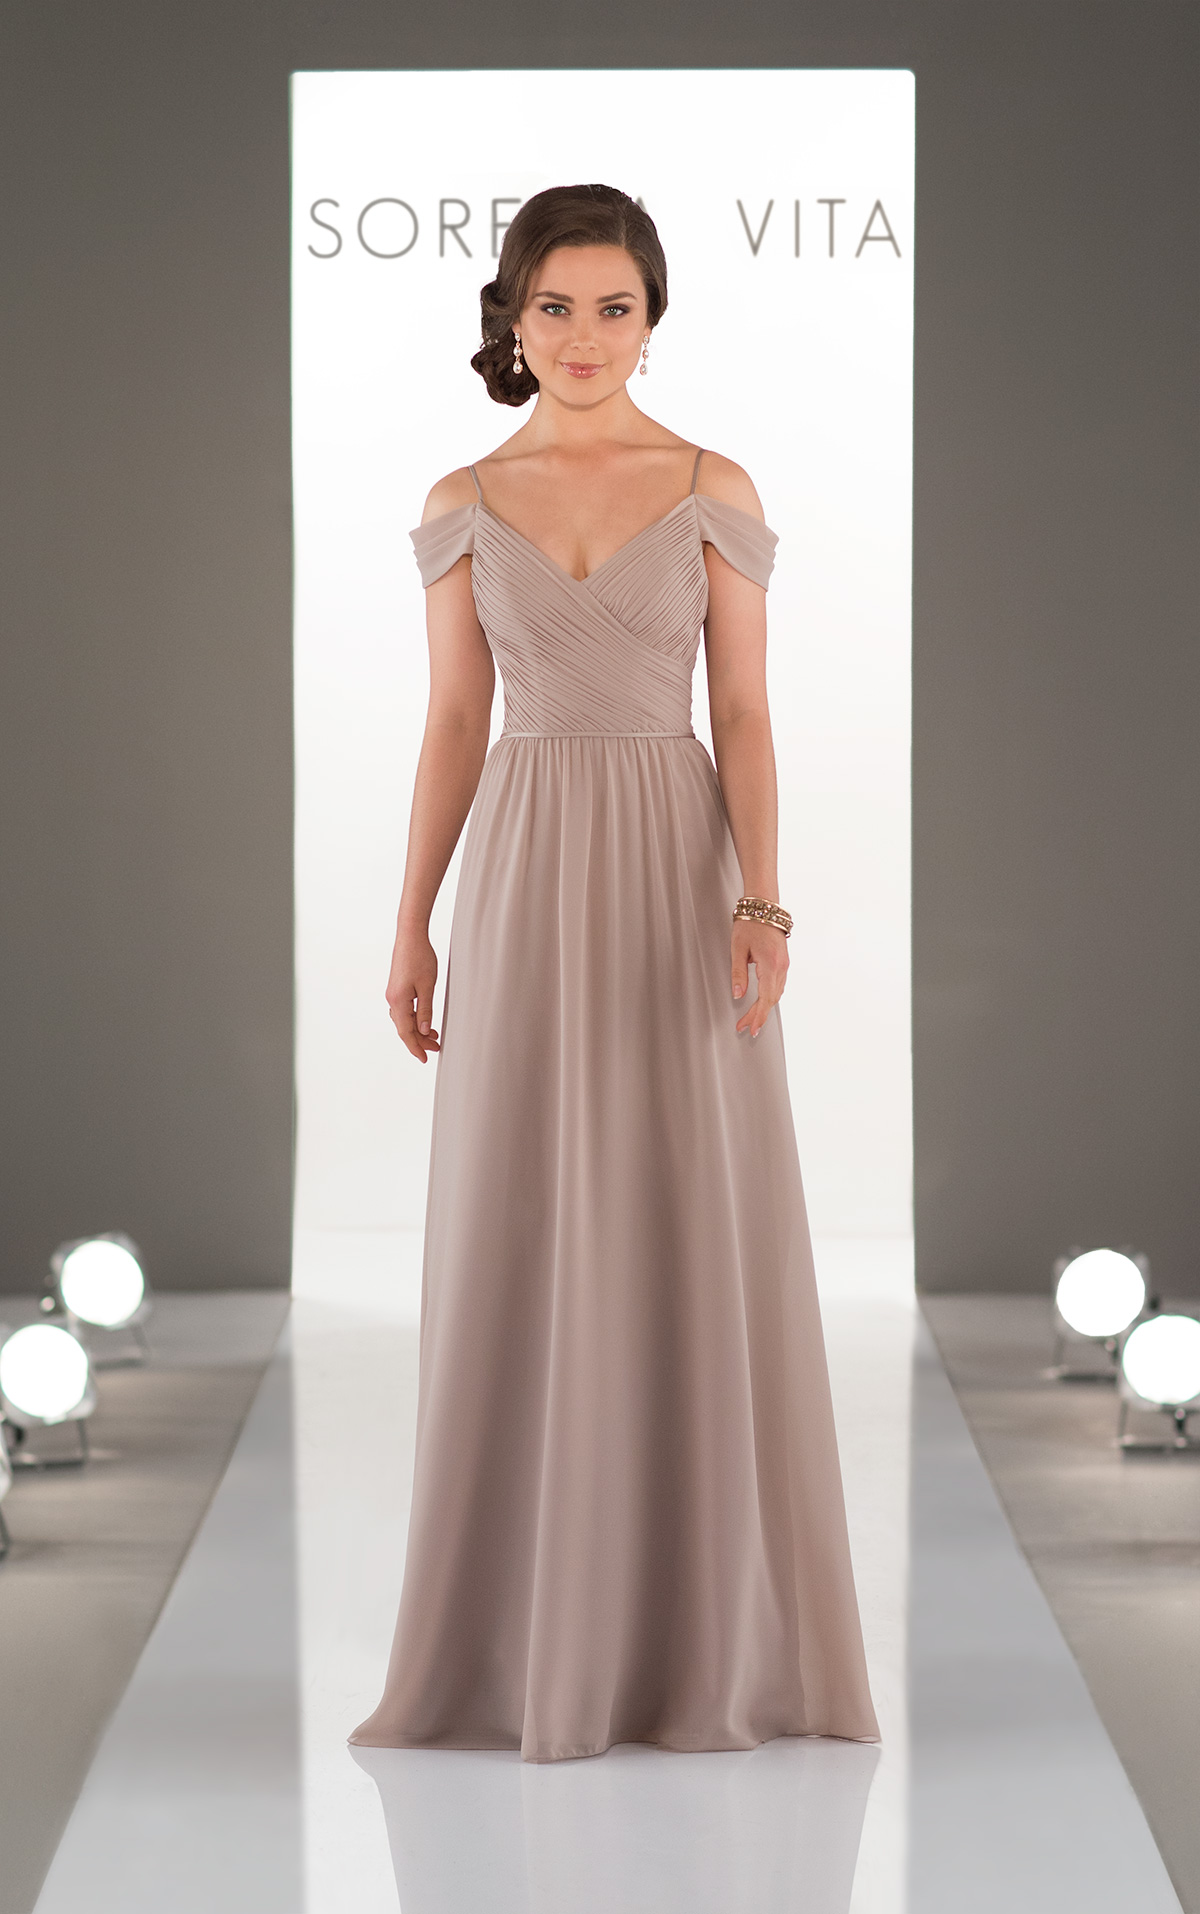 Off the shoulder bridesmaids dress style 8922 dress me pretty to try this gorgeous bridesmaids gown on at our bridal boutique in hinckley please contact us ombrellifo Gallery